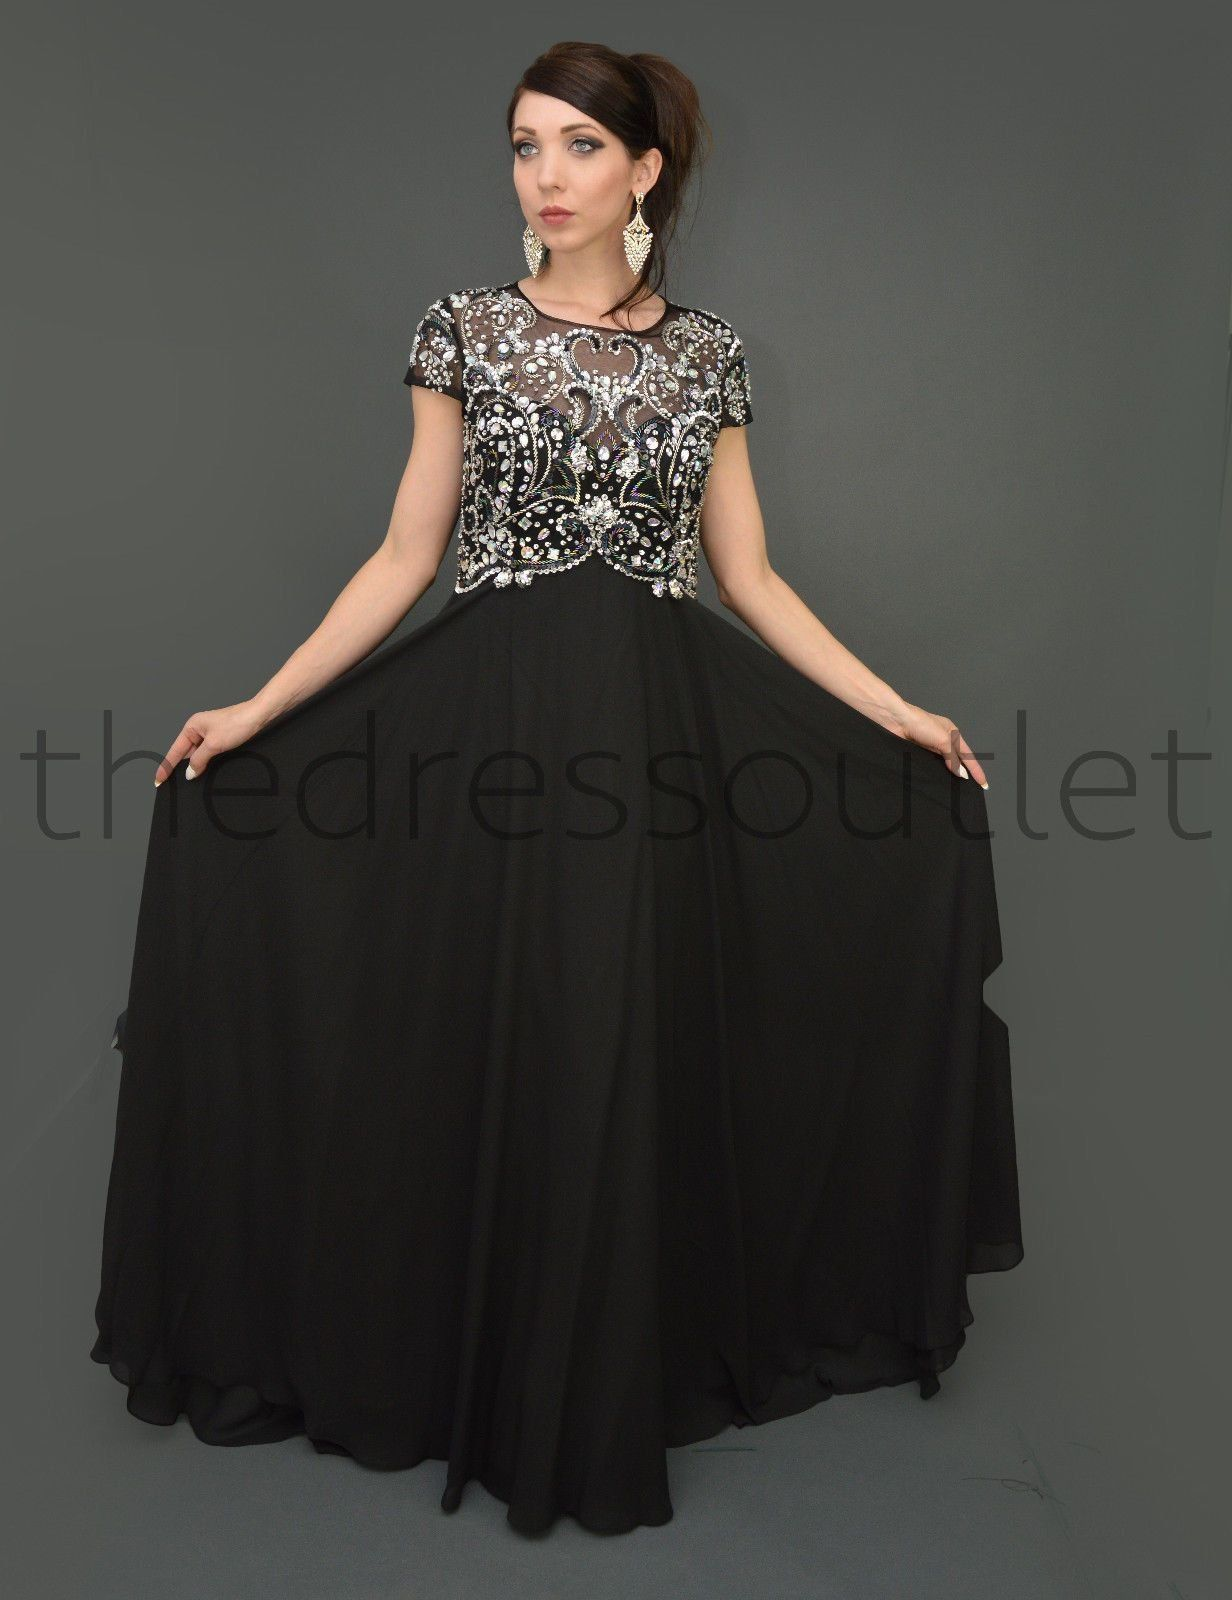 f28a0fe544a Modest Mother of the Bride Plus Size Formal Long Gown - The Dress Outlet - 2